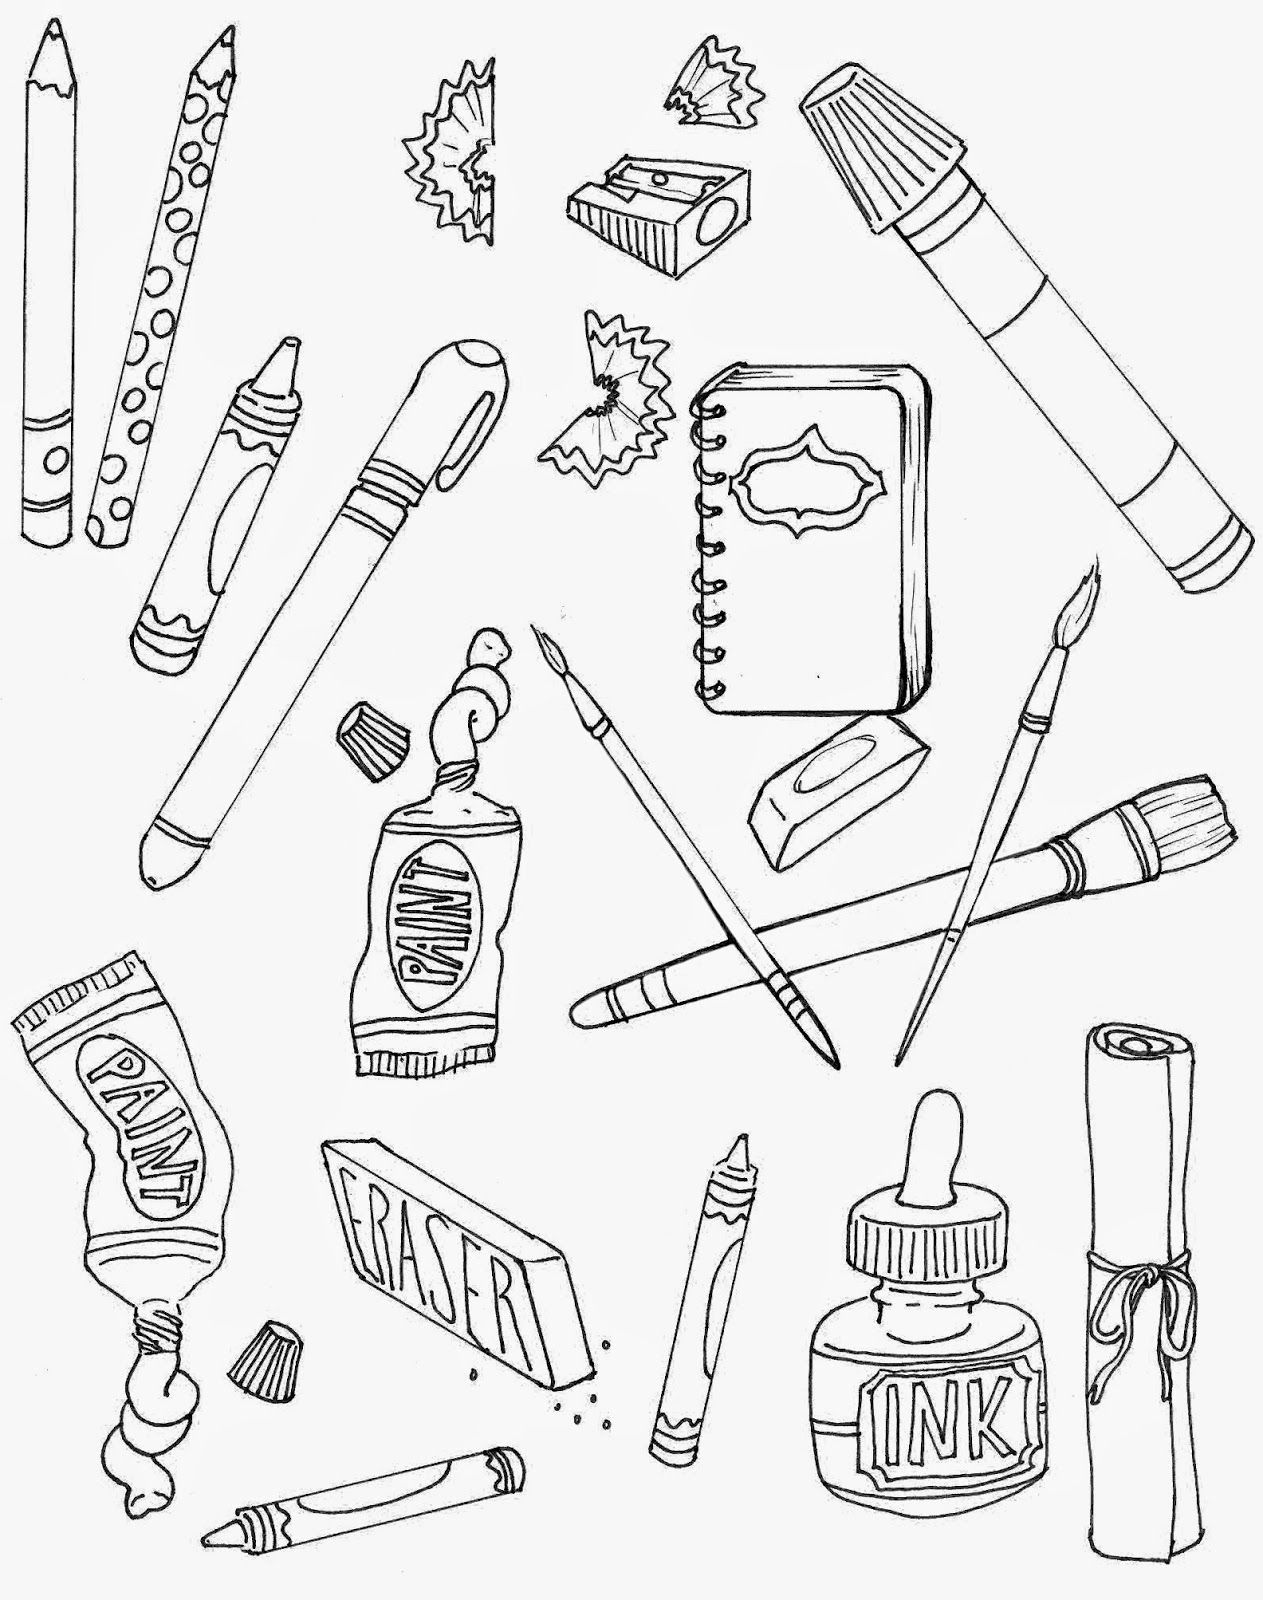 coloring pages school items - photo#23